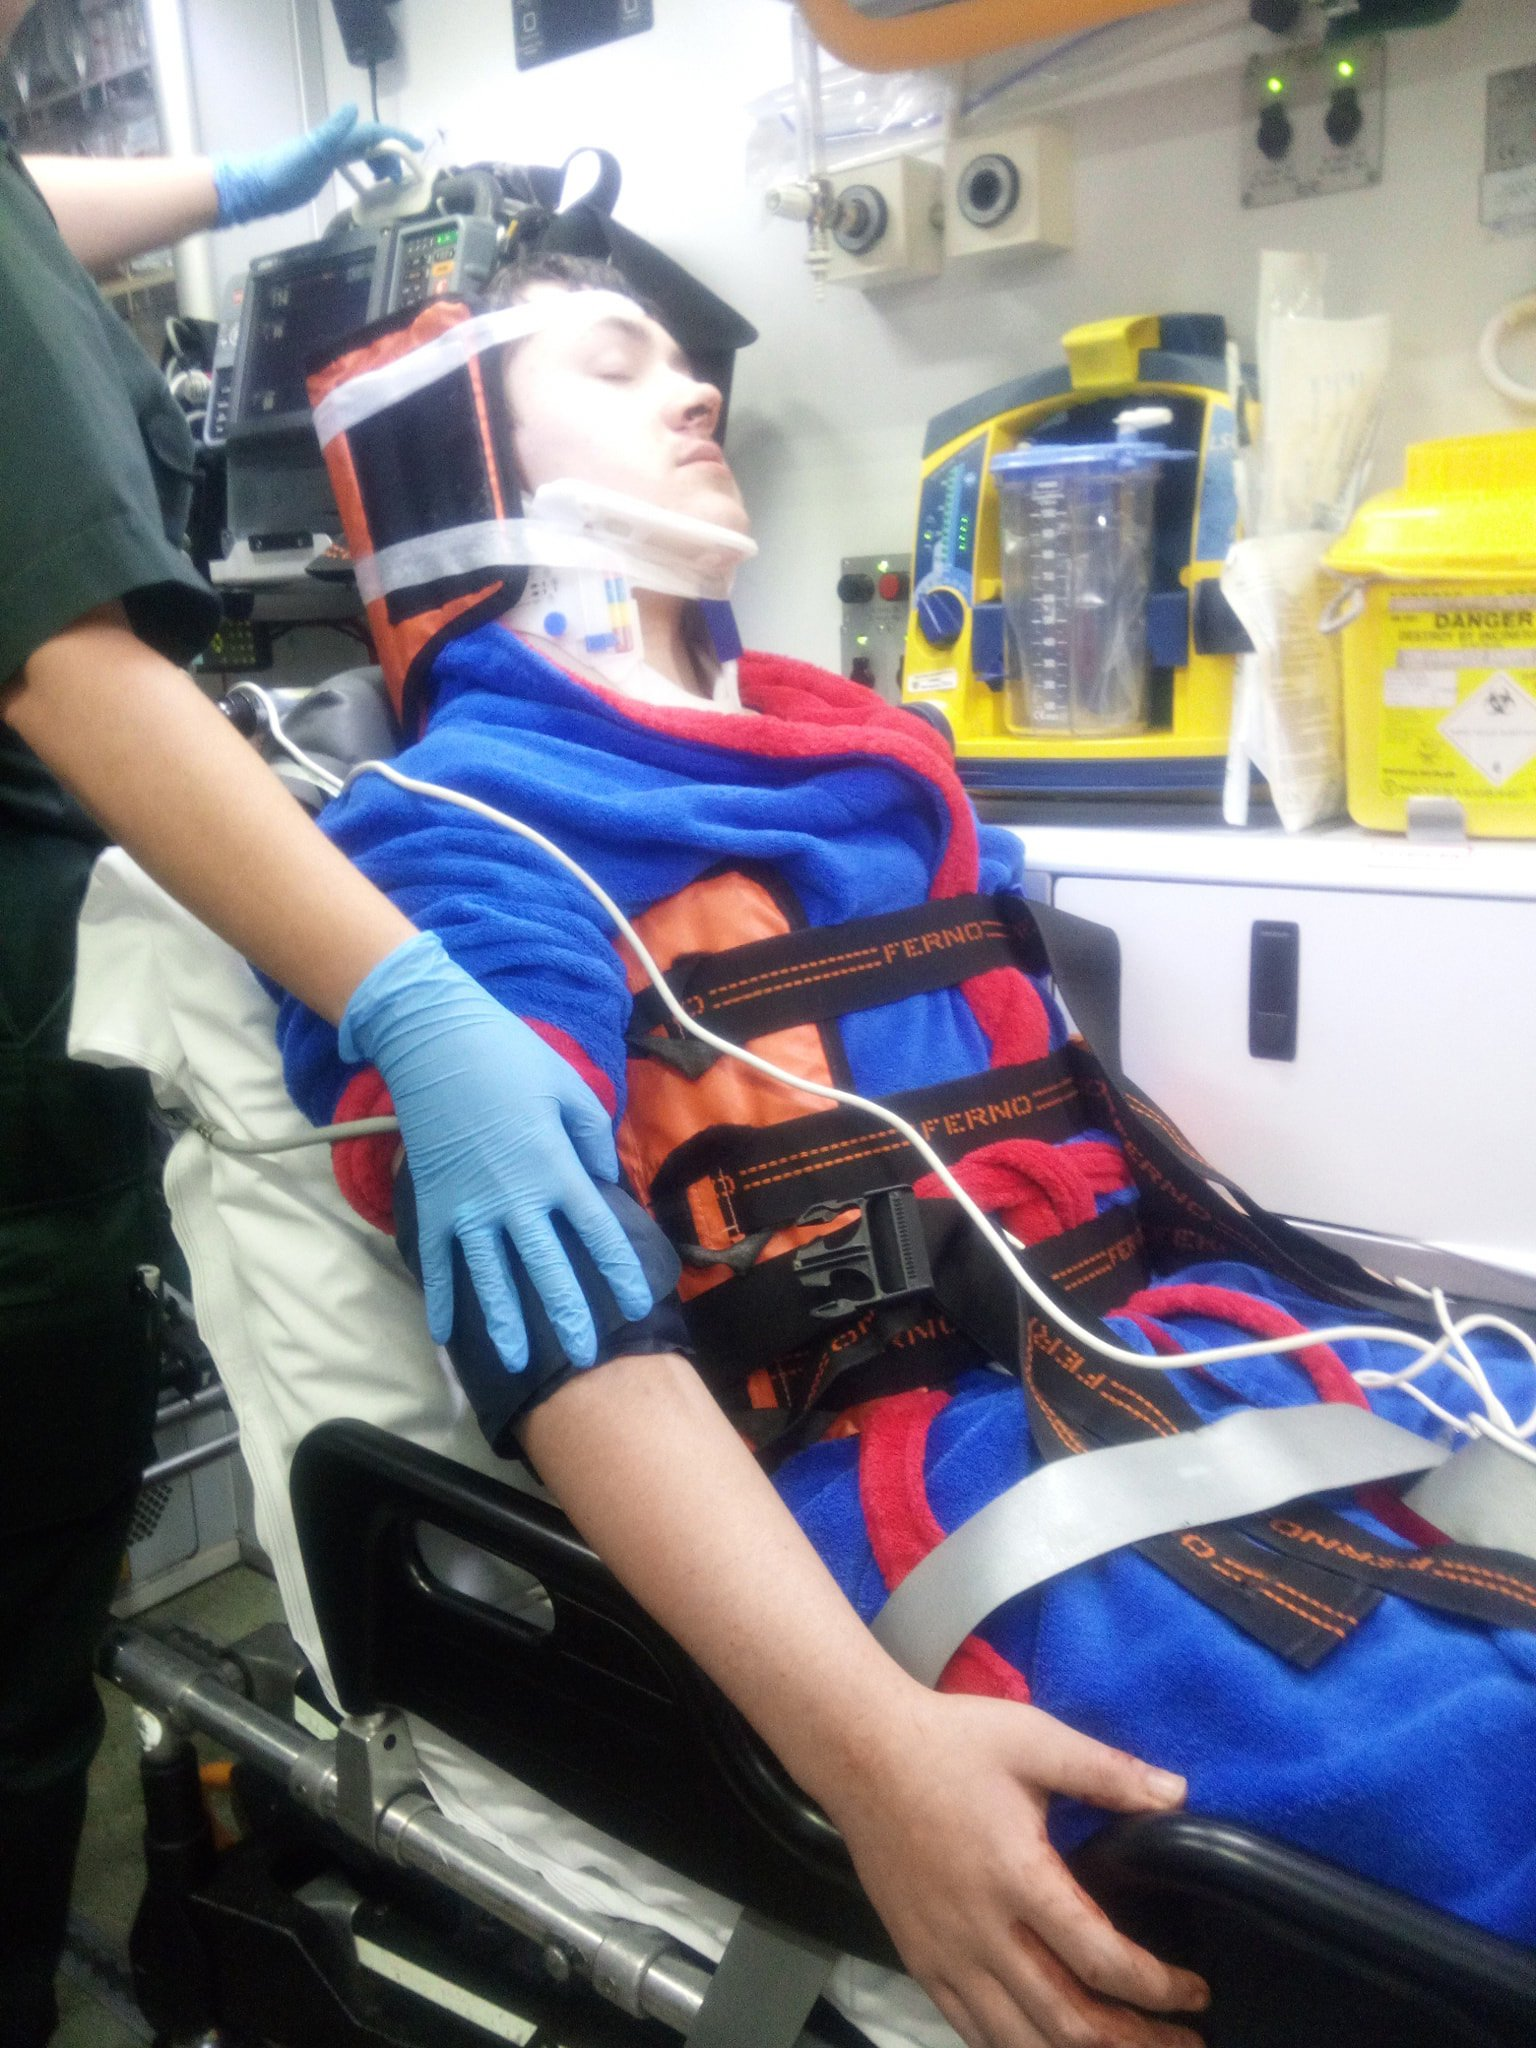 An autistic teenager was brutally attacked outside a takeaway in Tameside on his way to buy a burger. The 14-year-old ended up in hospital following the vicious assault which happened at around 9.40pm on Saturday in Denton. Caption: Police are investigating after a 14-year-old boy was attacked outside a takeaway on Ashton Road in Denton on September 15.